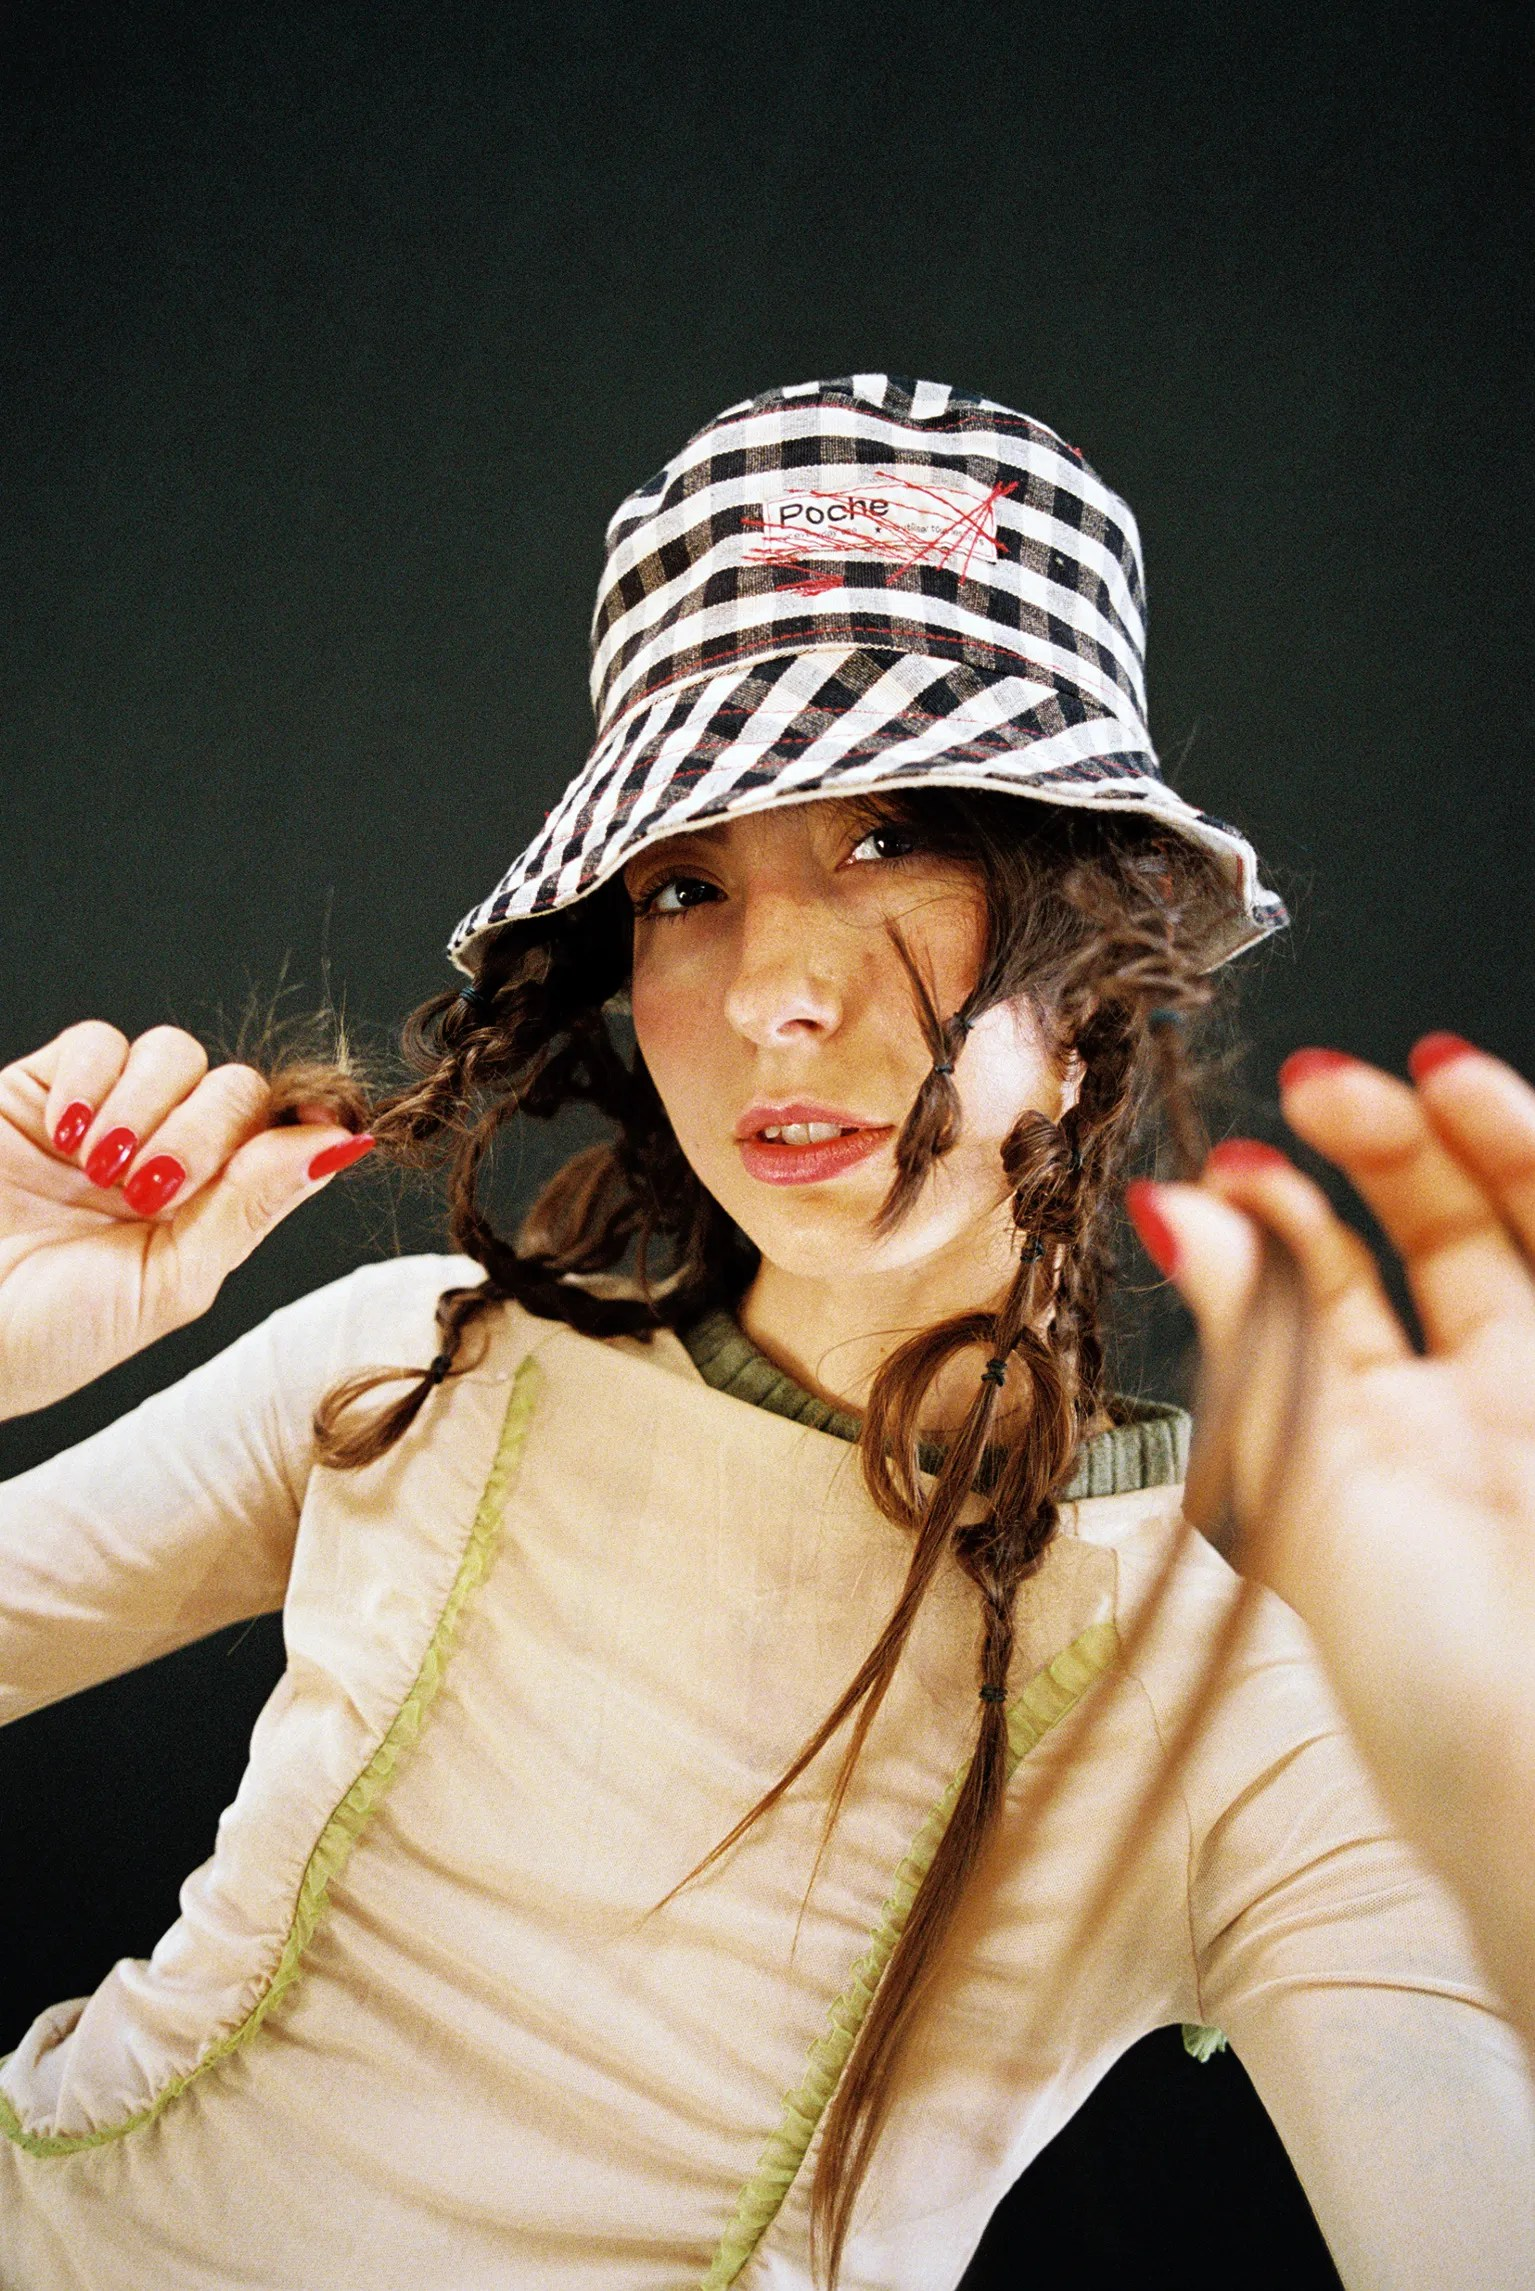 A girl wears a gingham bucket hat and plays with her hair